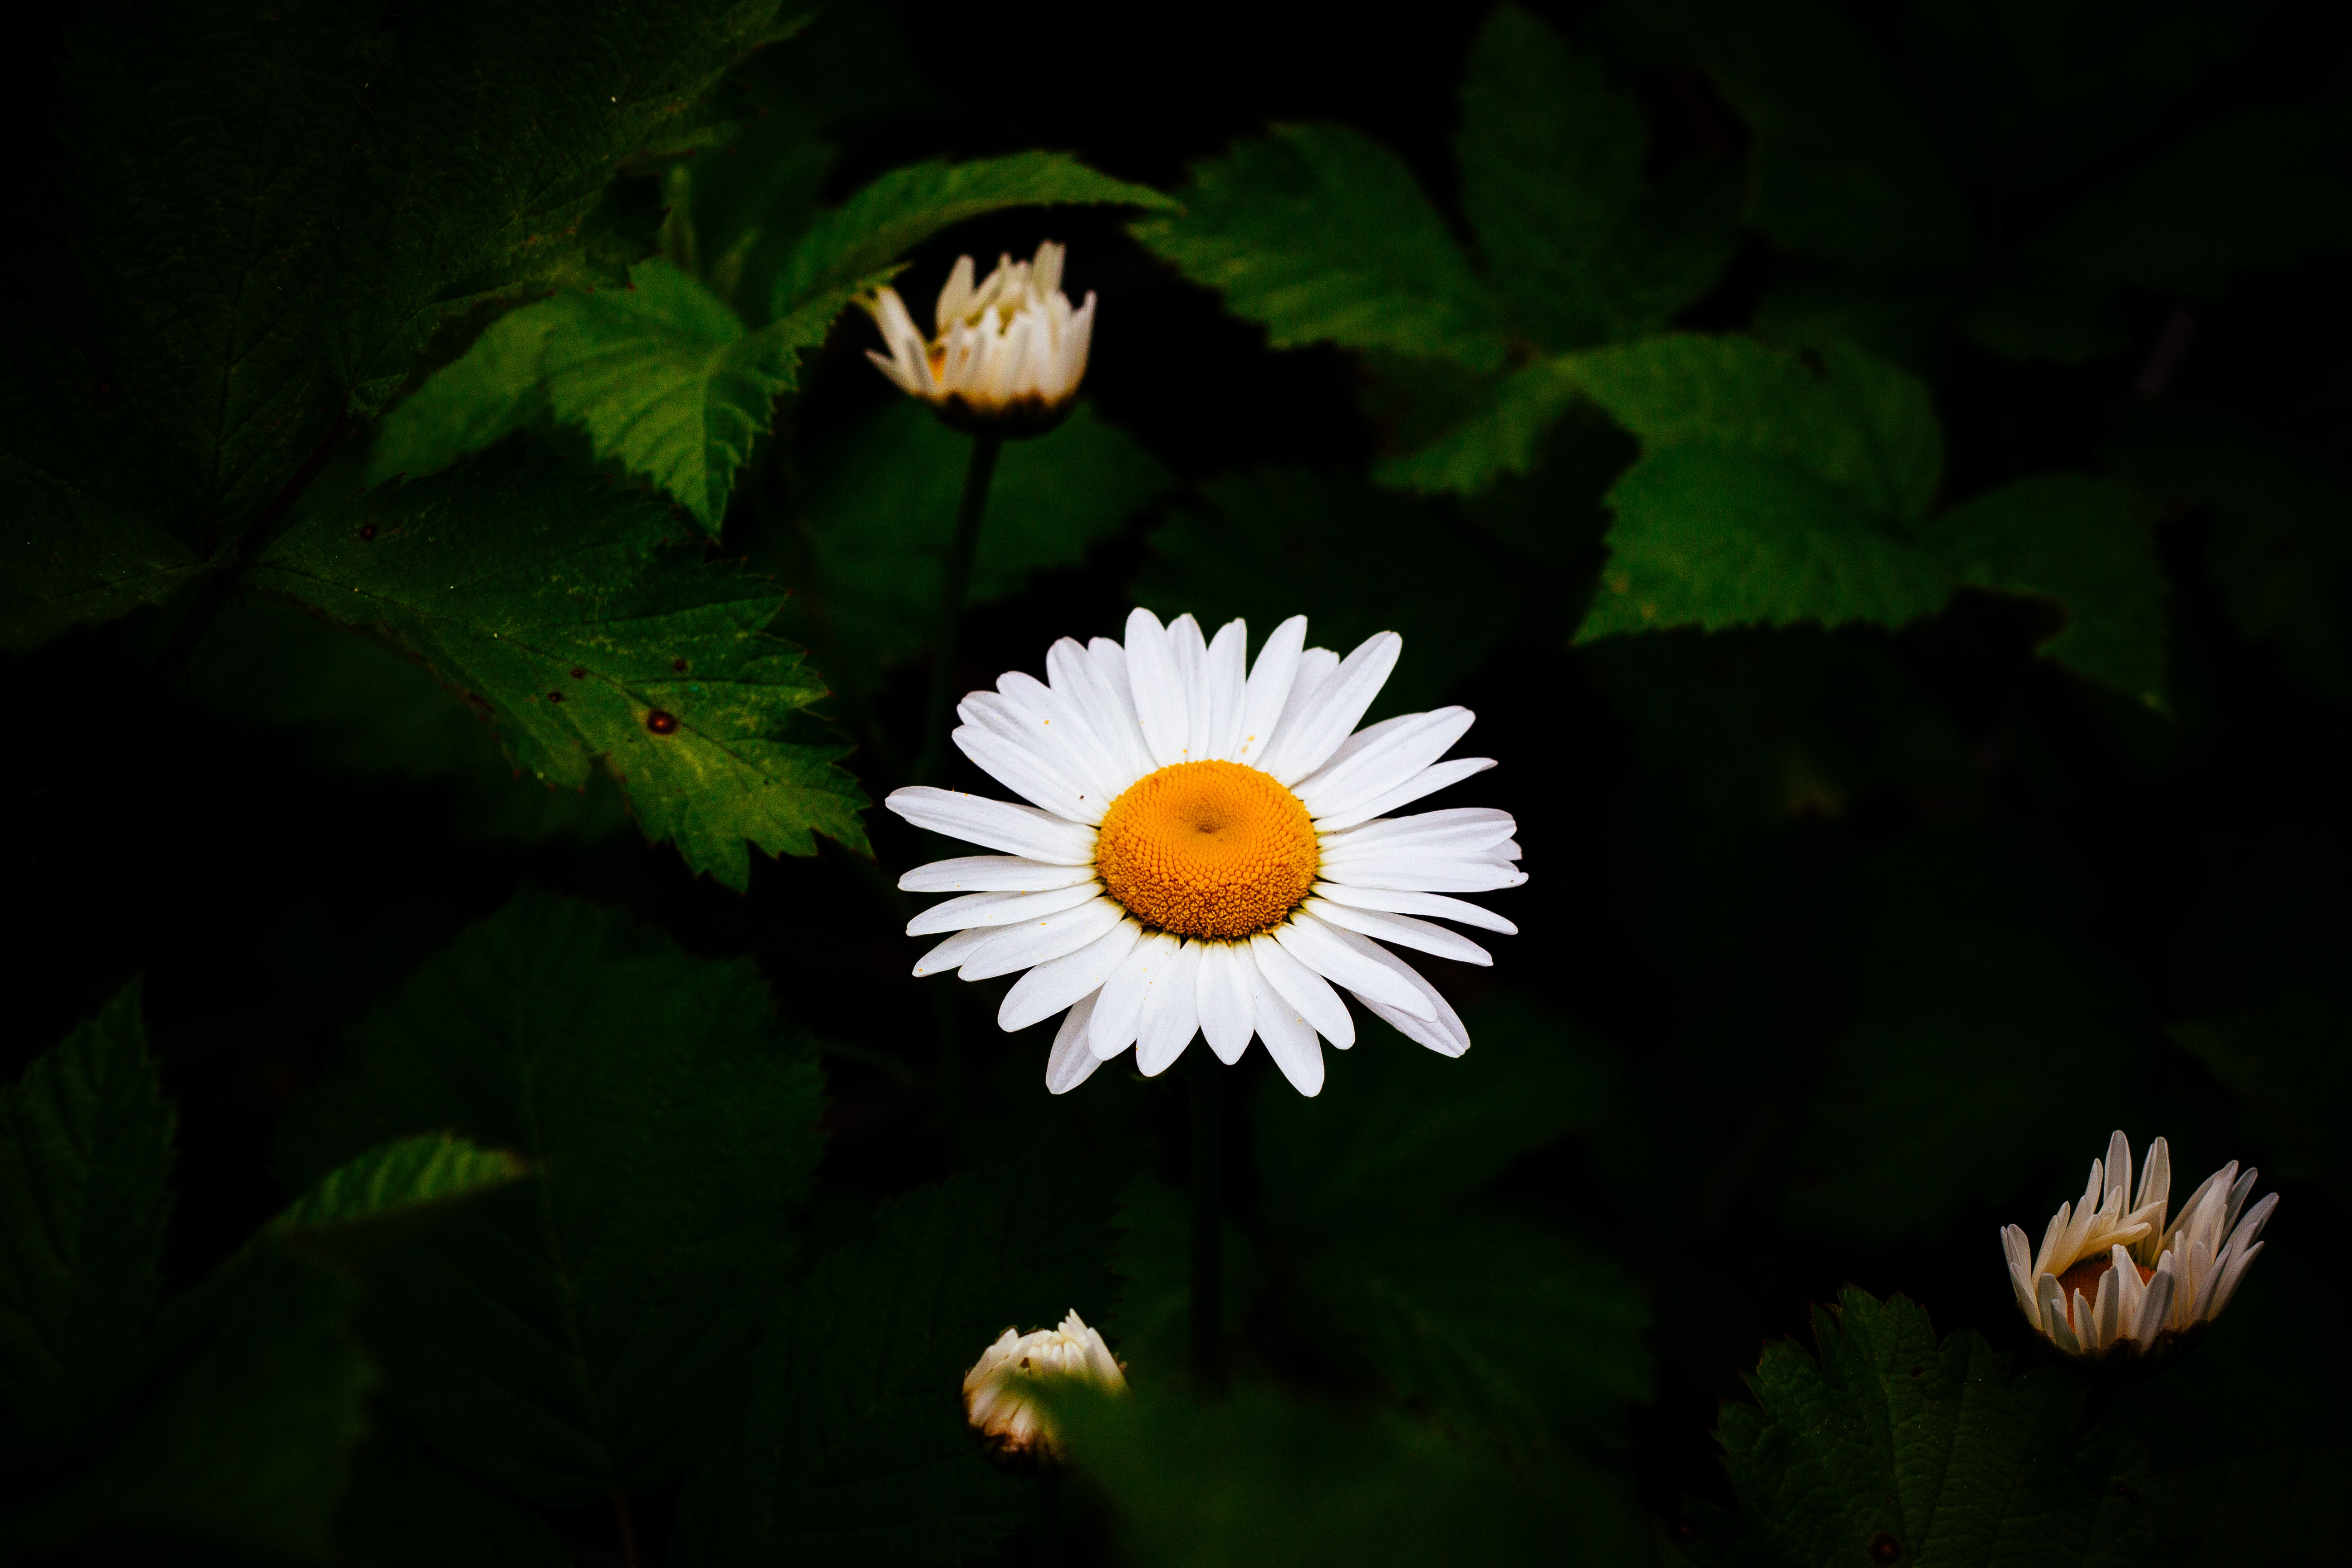 bokeh photography of white and yellow flower